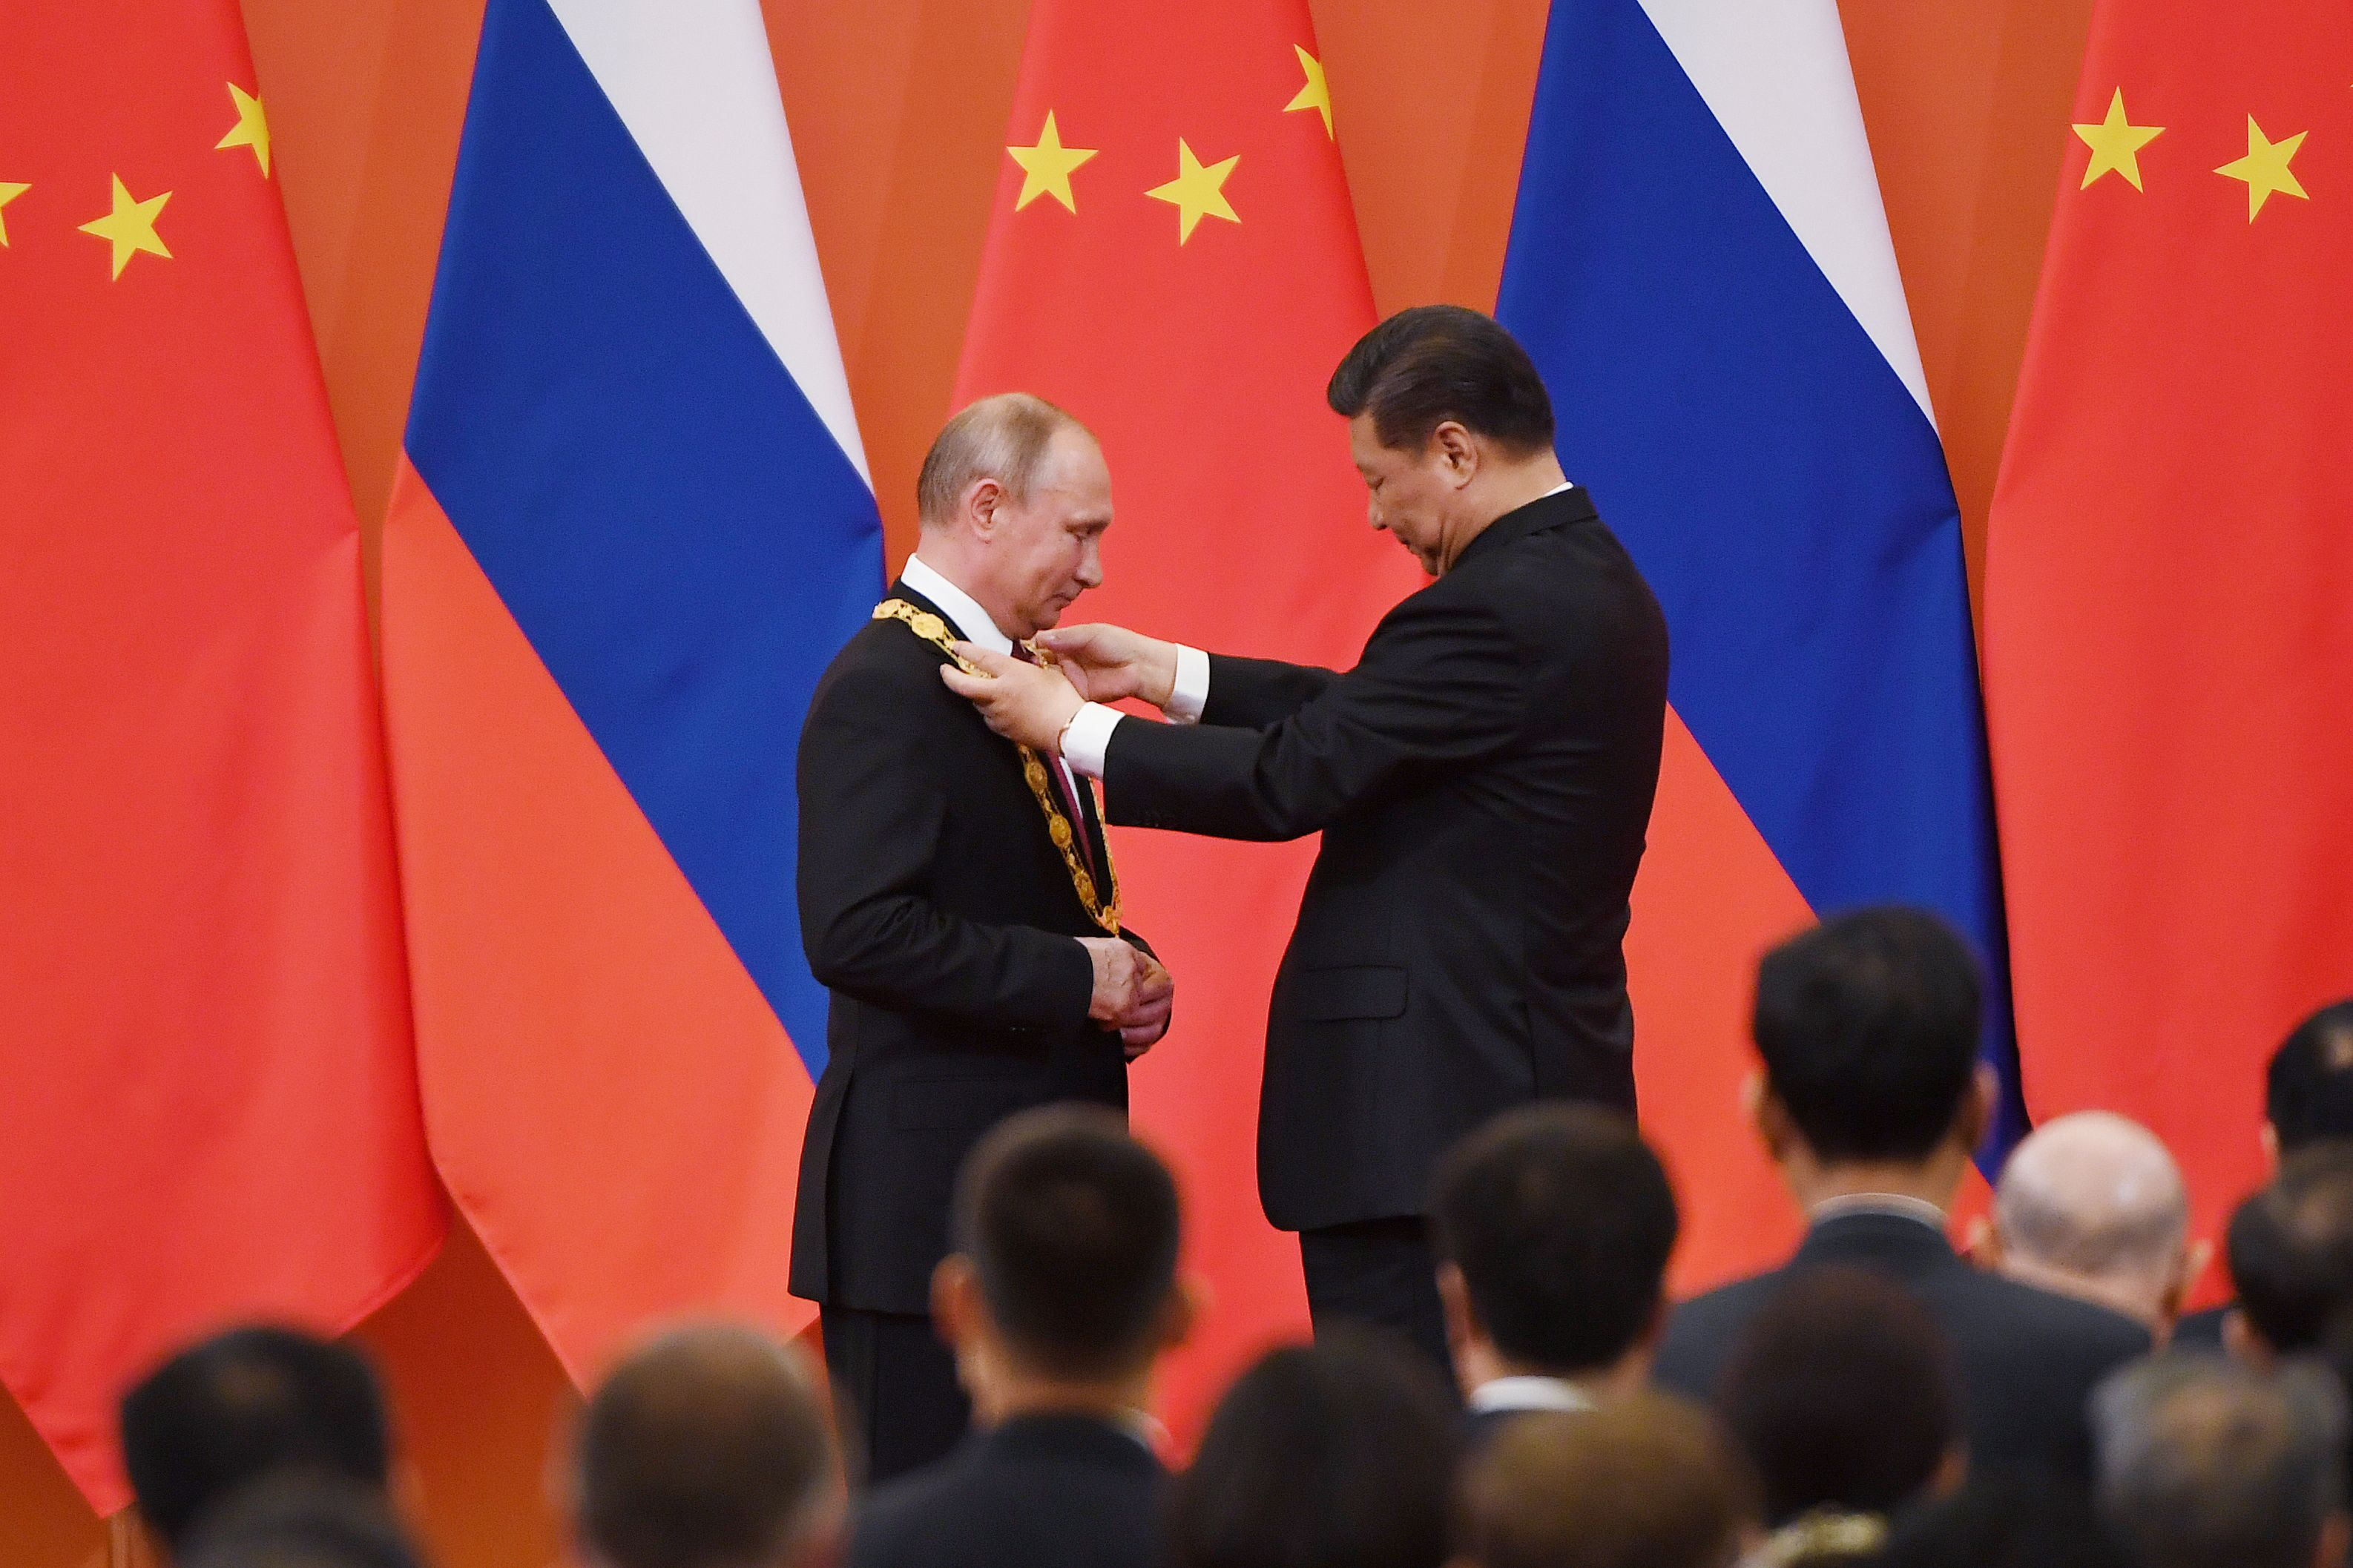 As Negative Views of China Grow in U.S., Russians Are Happy with Their Neighbor - Newsweek